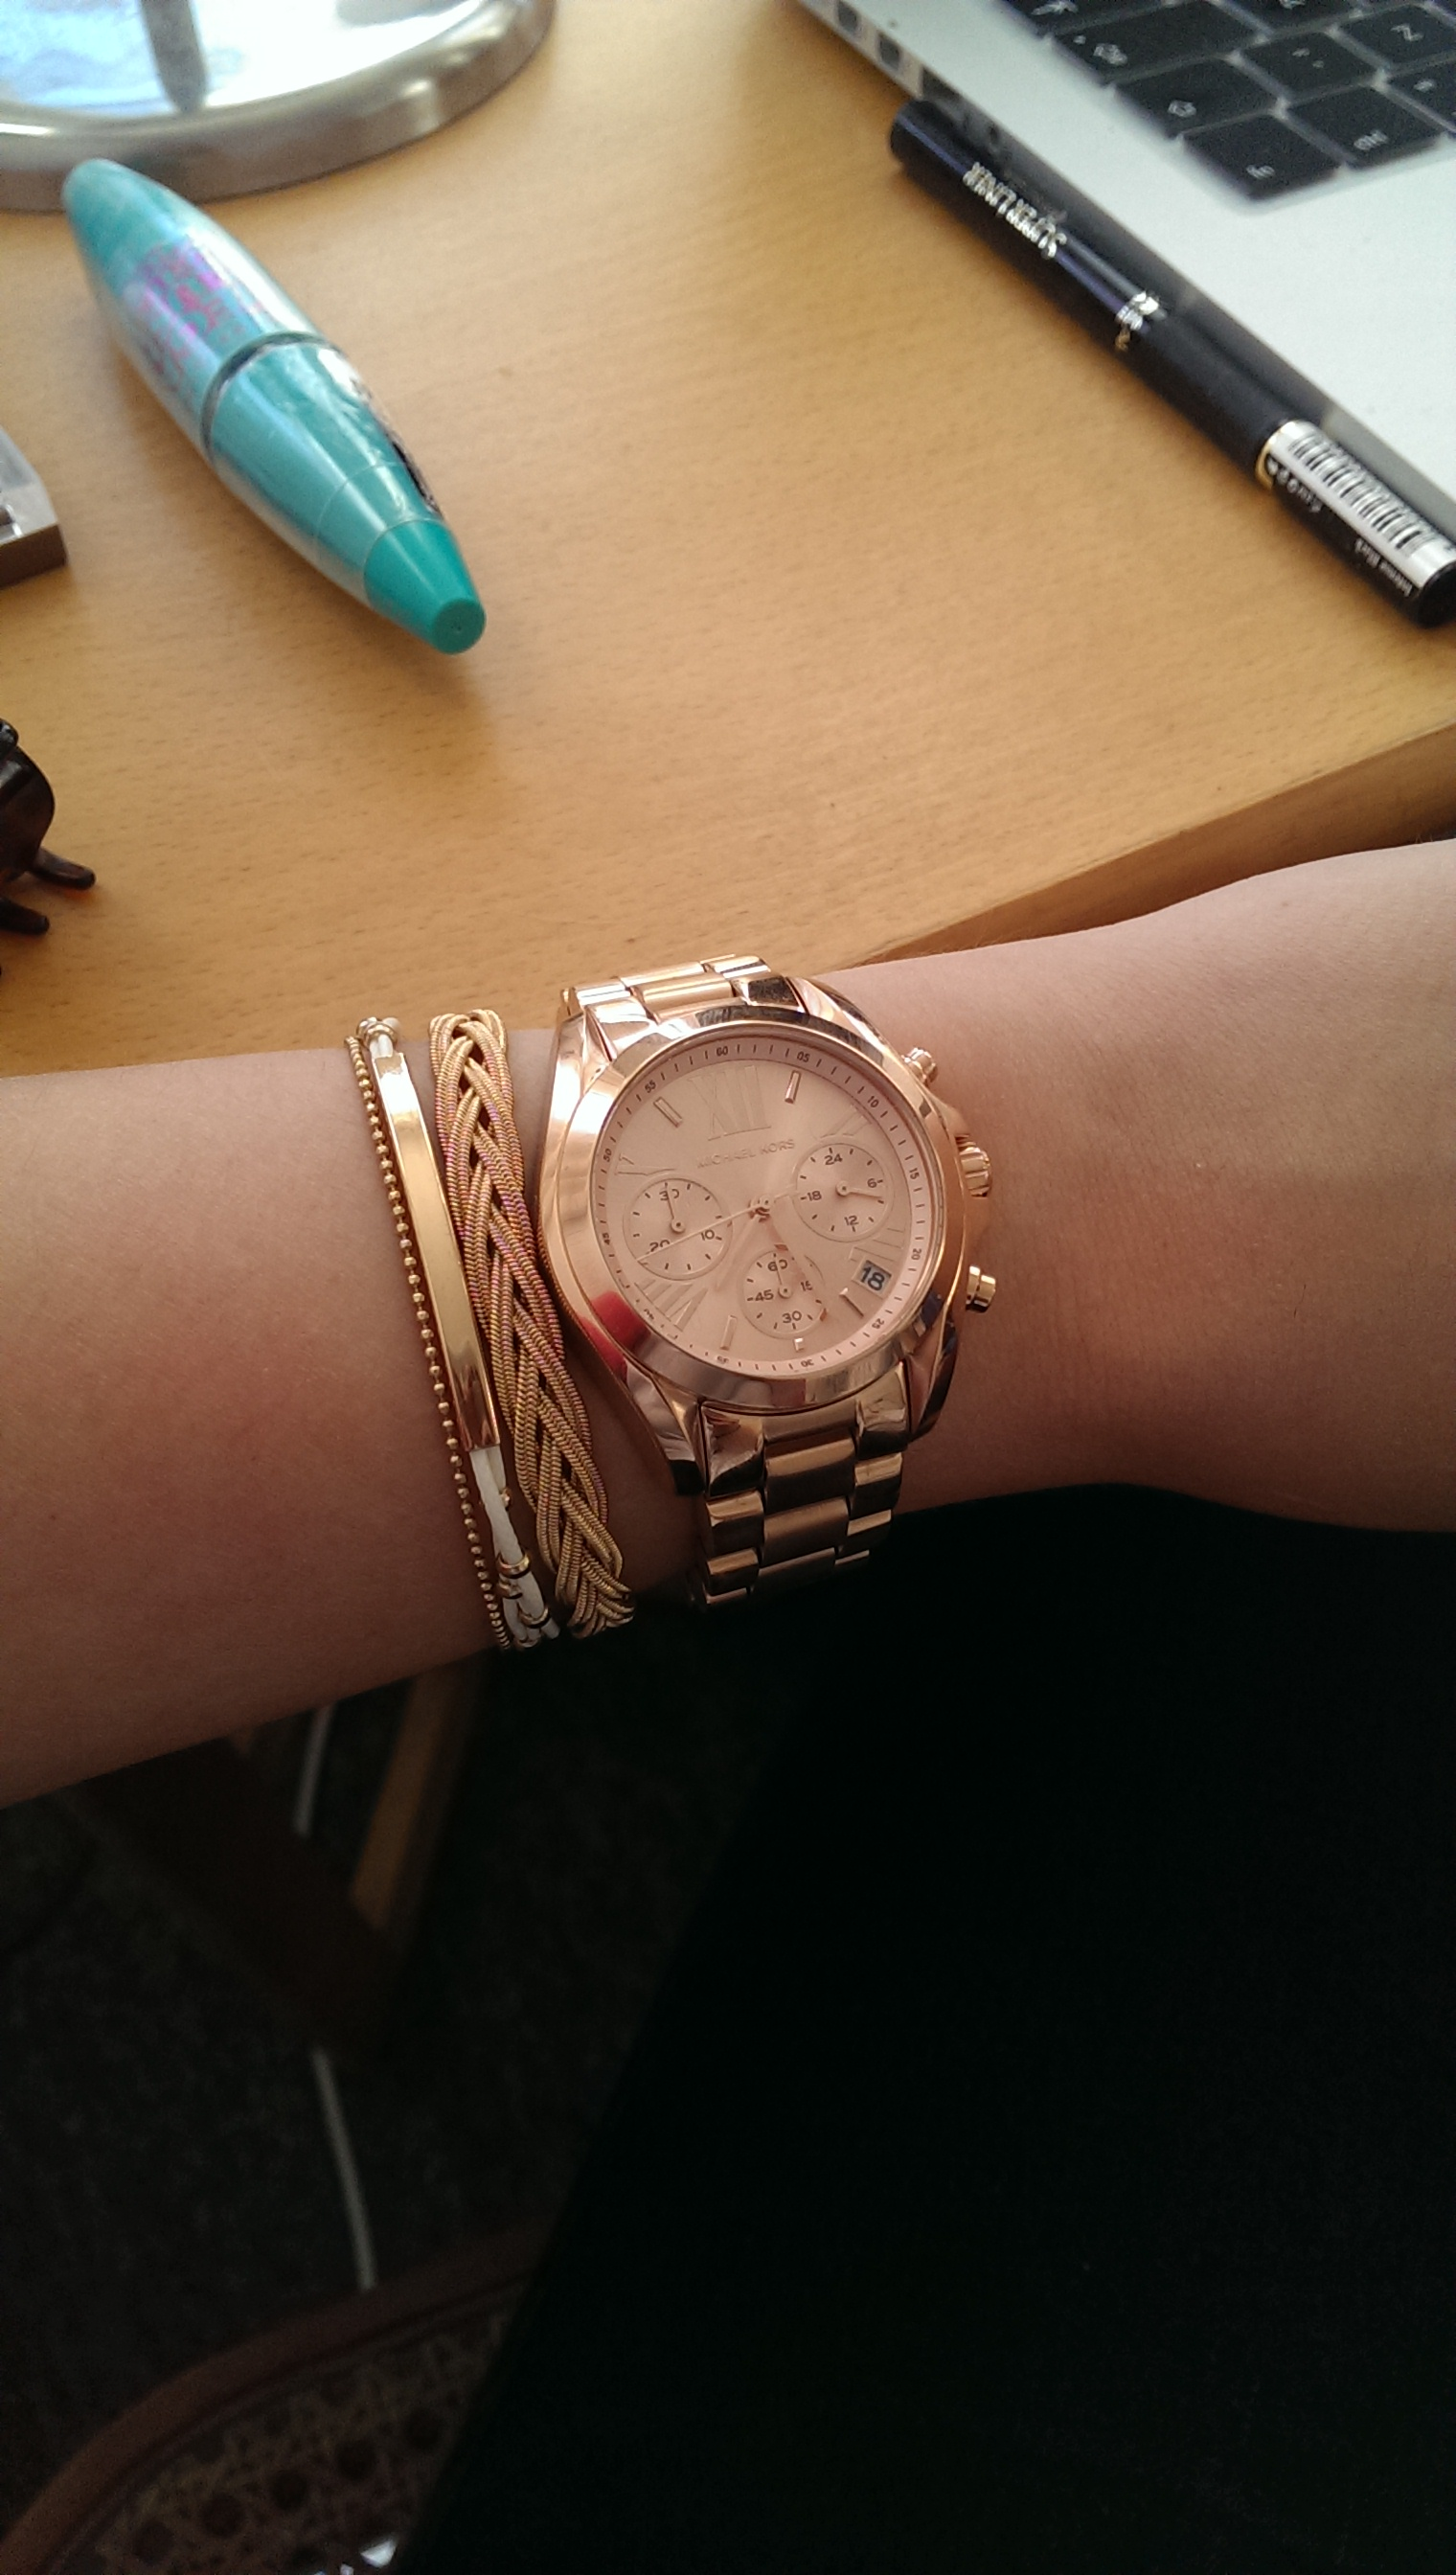 be9a2ecf765b I am so happy with this watch. It was worth every penny. I was worried  about going for the rose gold